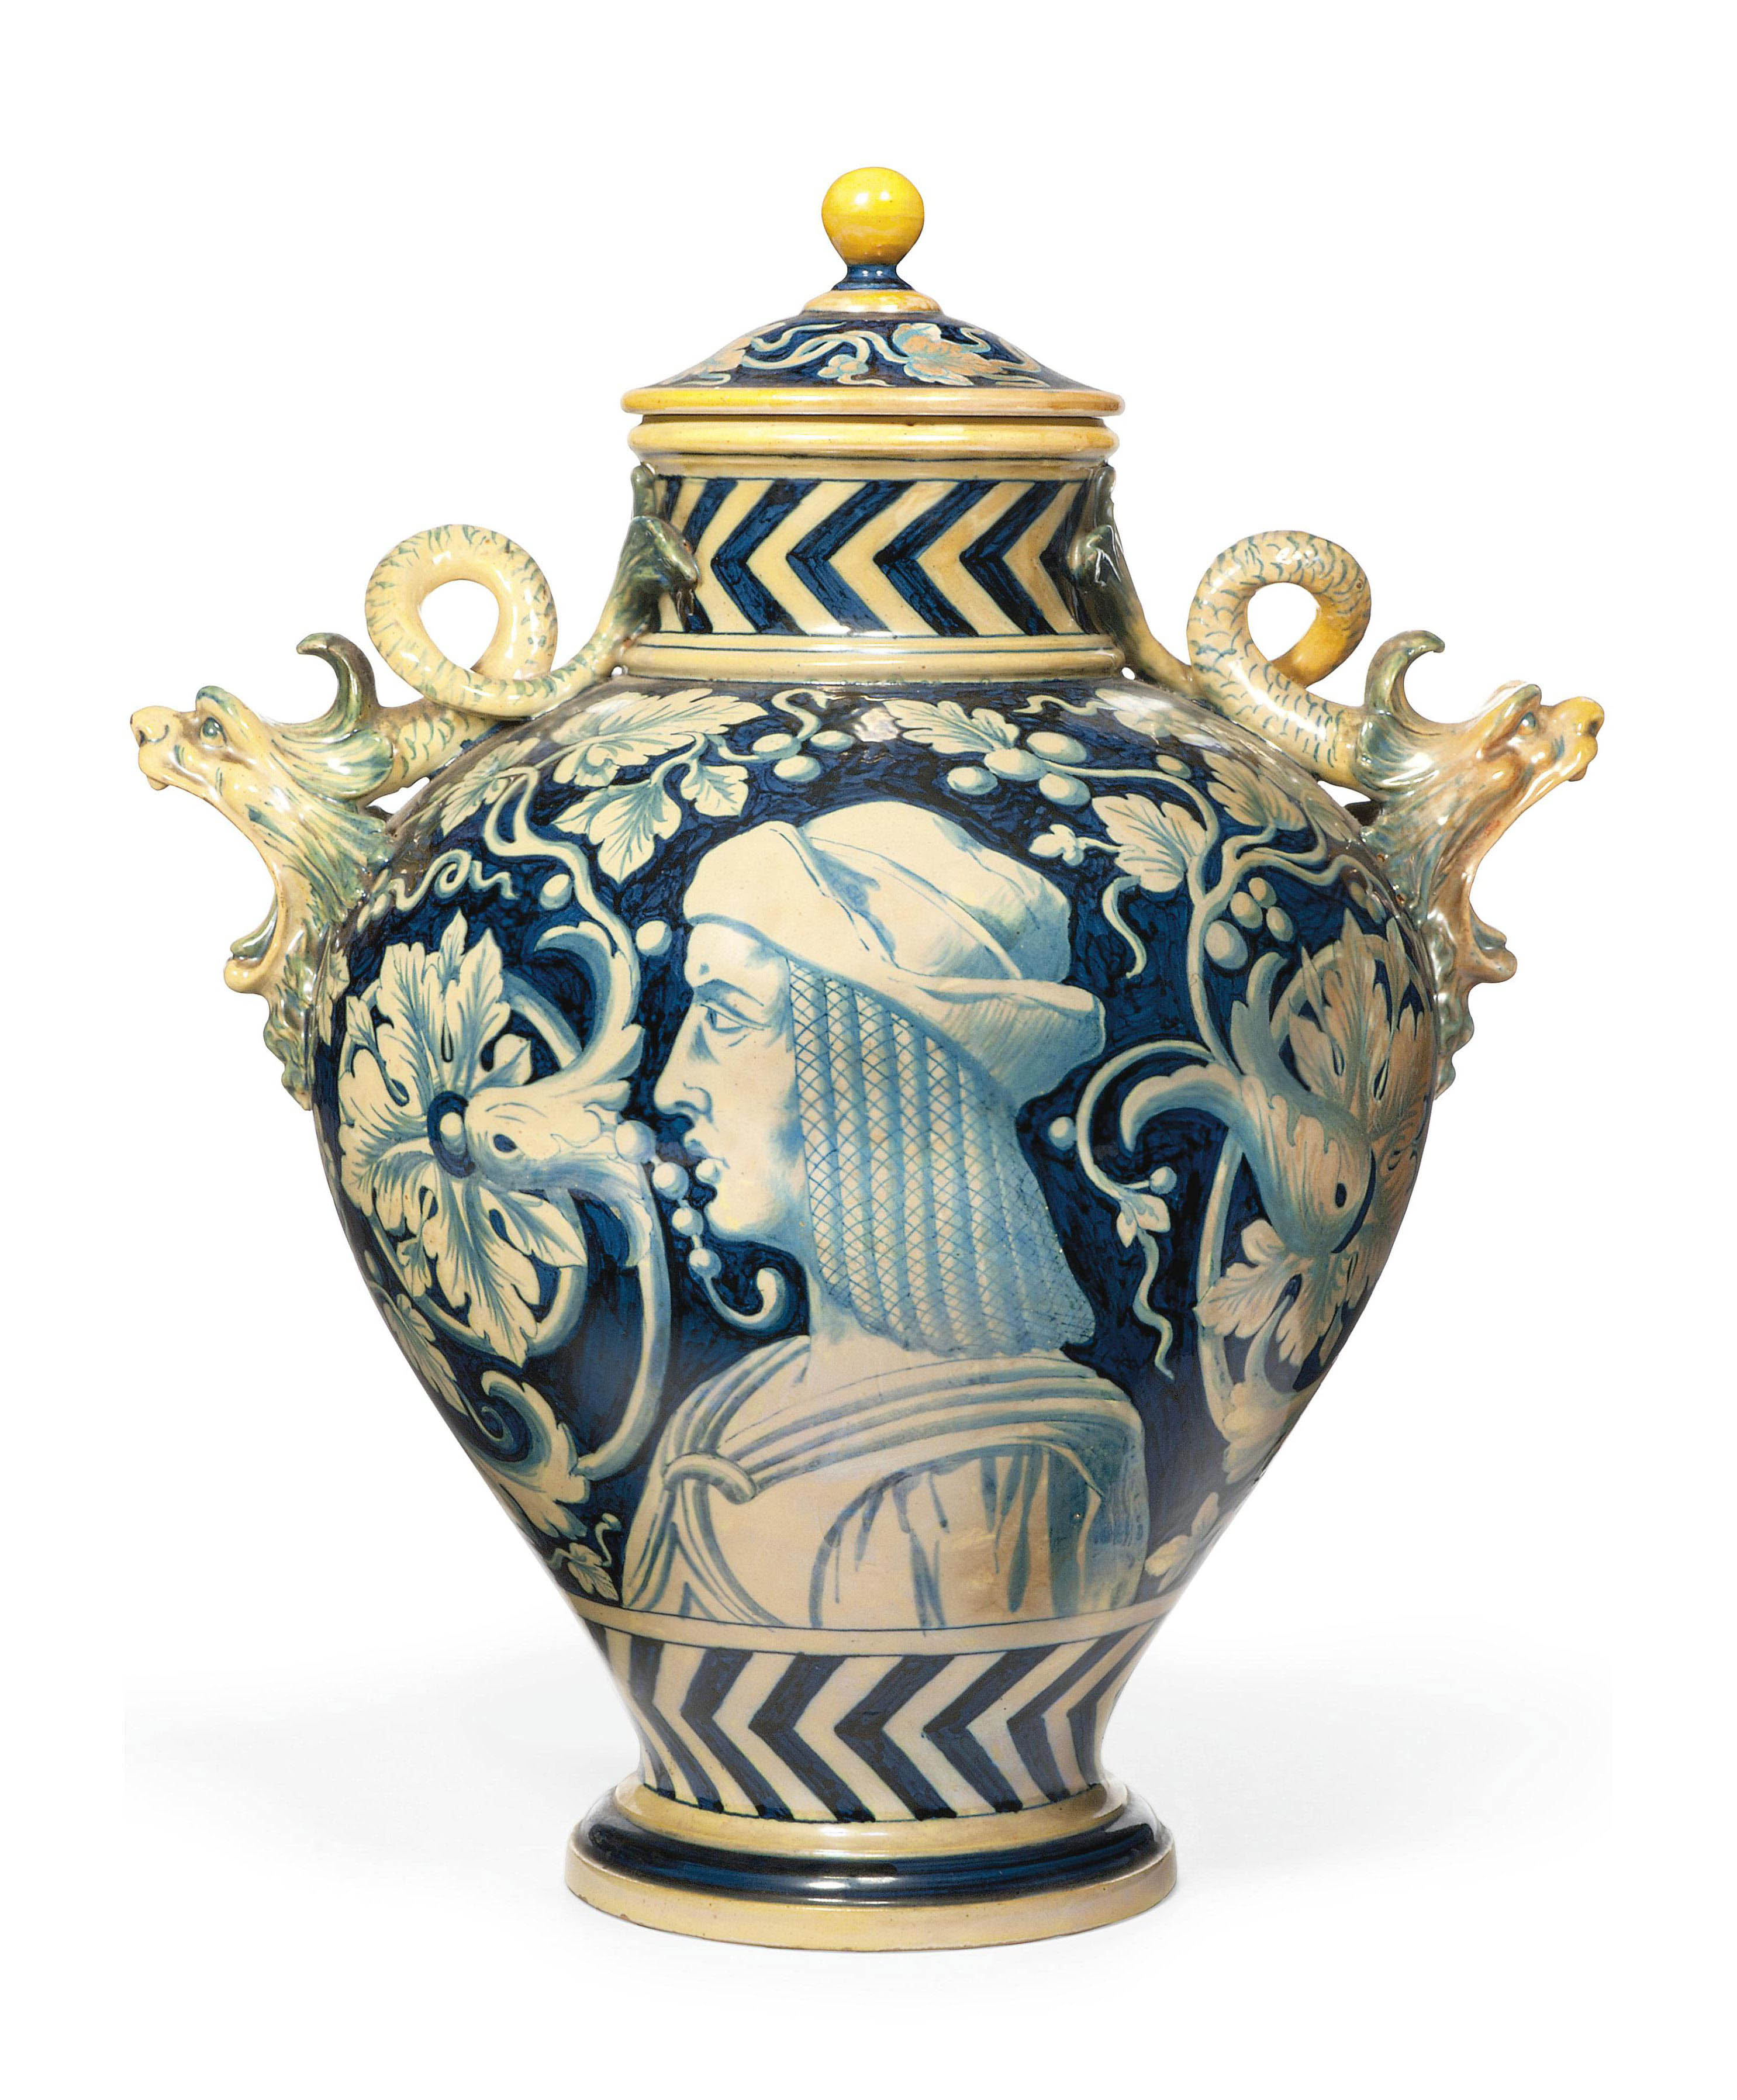 A GINORI LUSTRE TWO-HANDLED VASE AND COVER